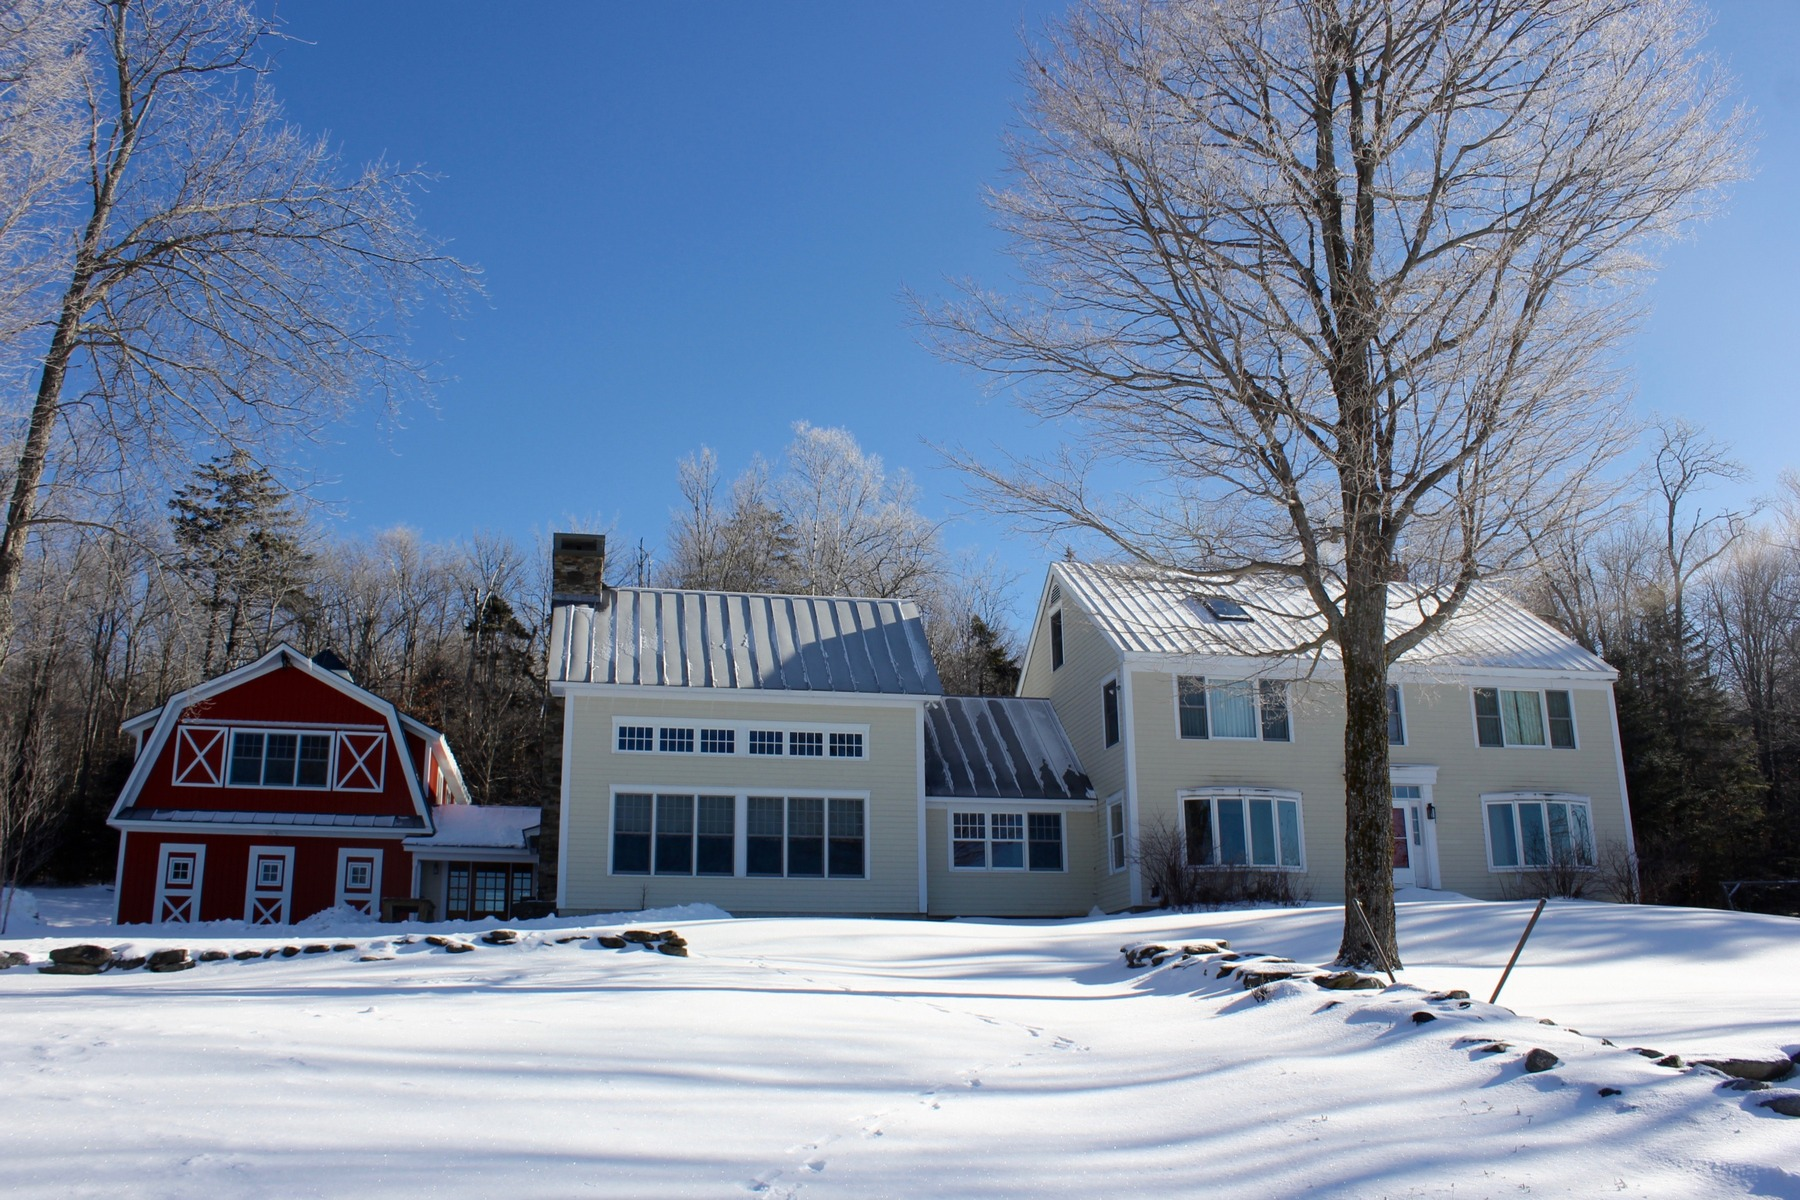 Single Family Home for Sale at High Meadow - A Private Vermont Estate 444 Tin Shanty Rd Shrewsbury, Vermont 05738 United States